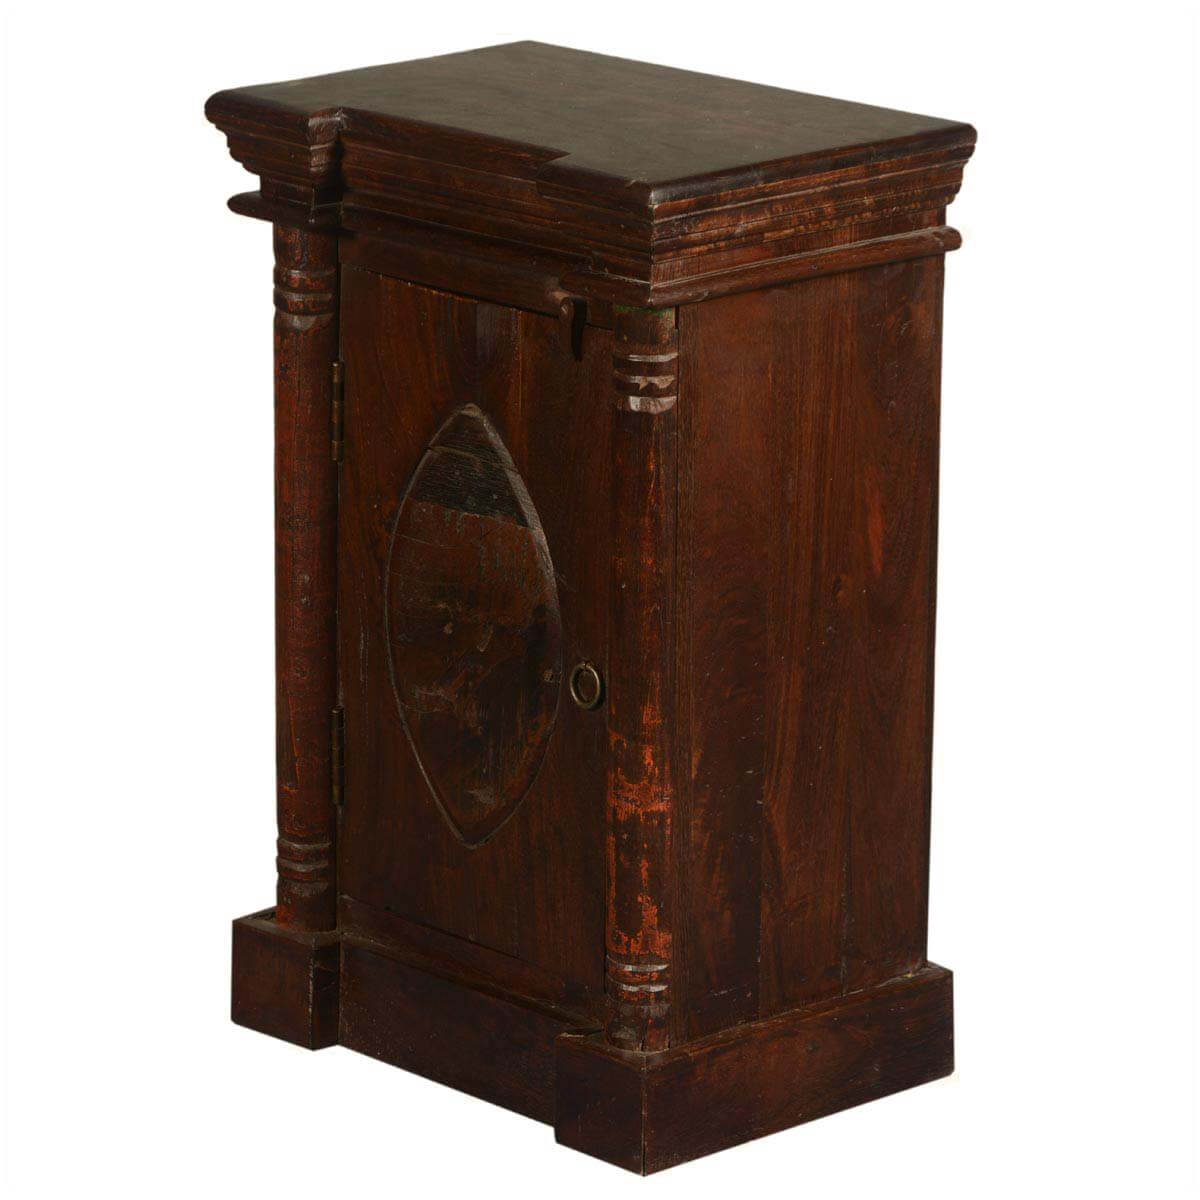 Gothic Lemon Handcrafted Reclaimed Wood Single Door Nightstand Cabinet